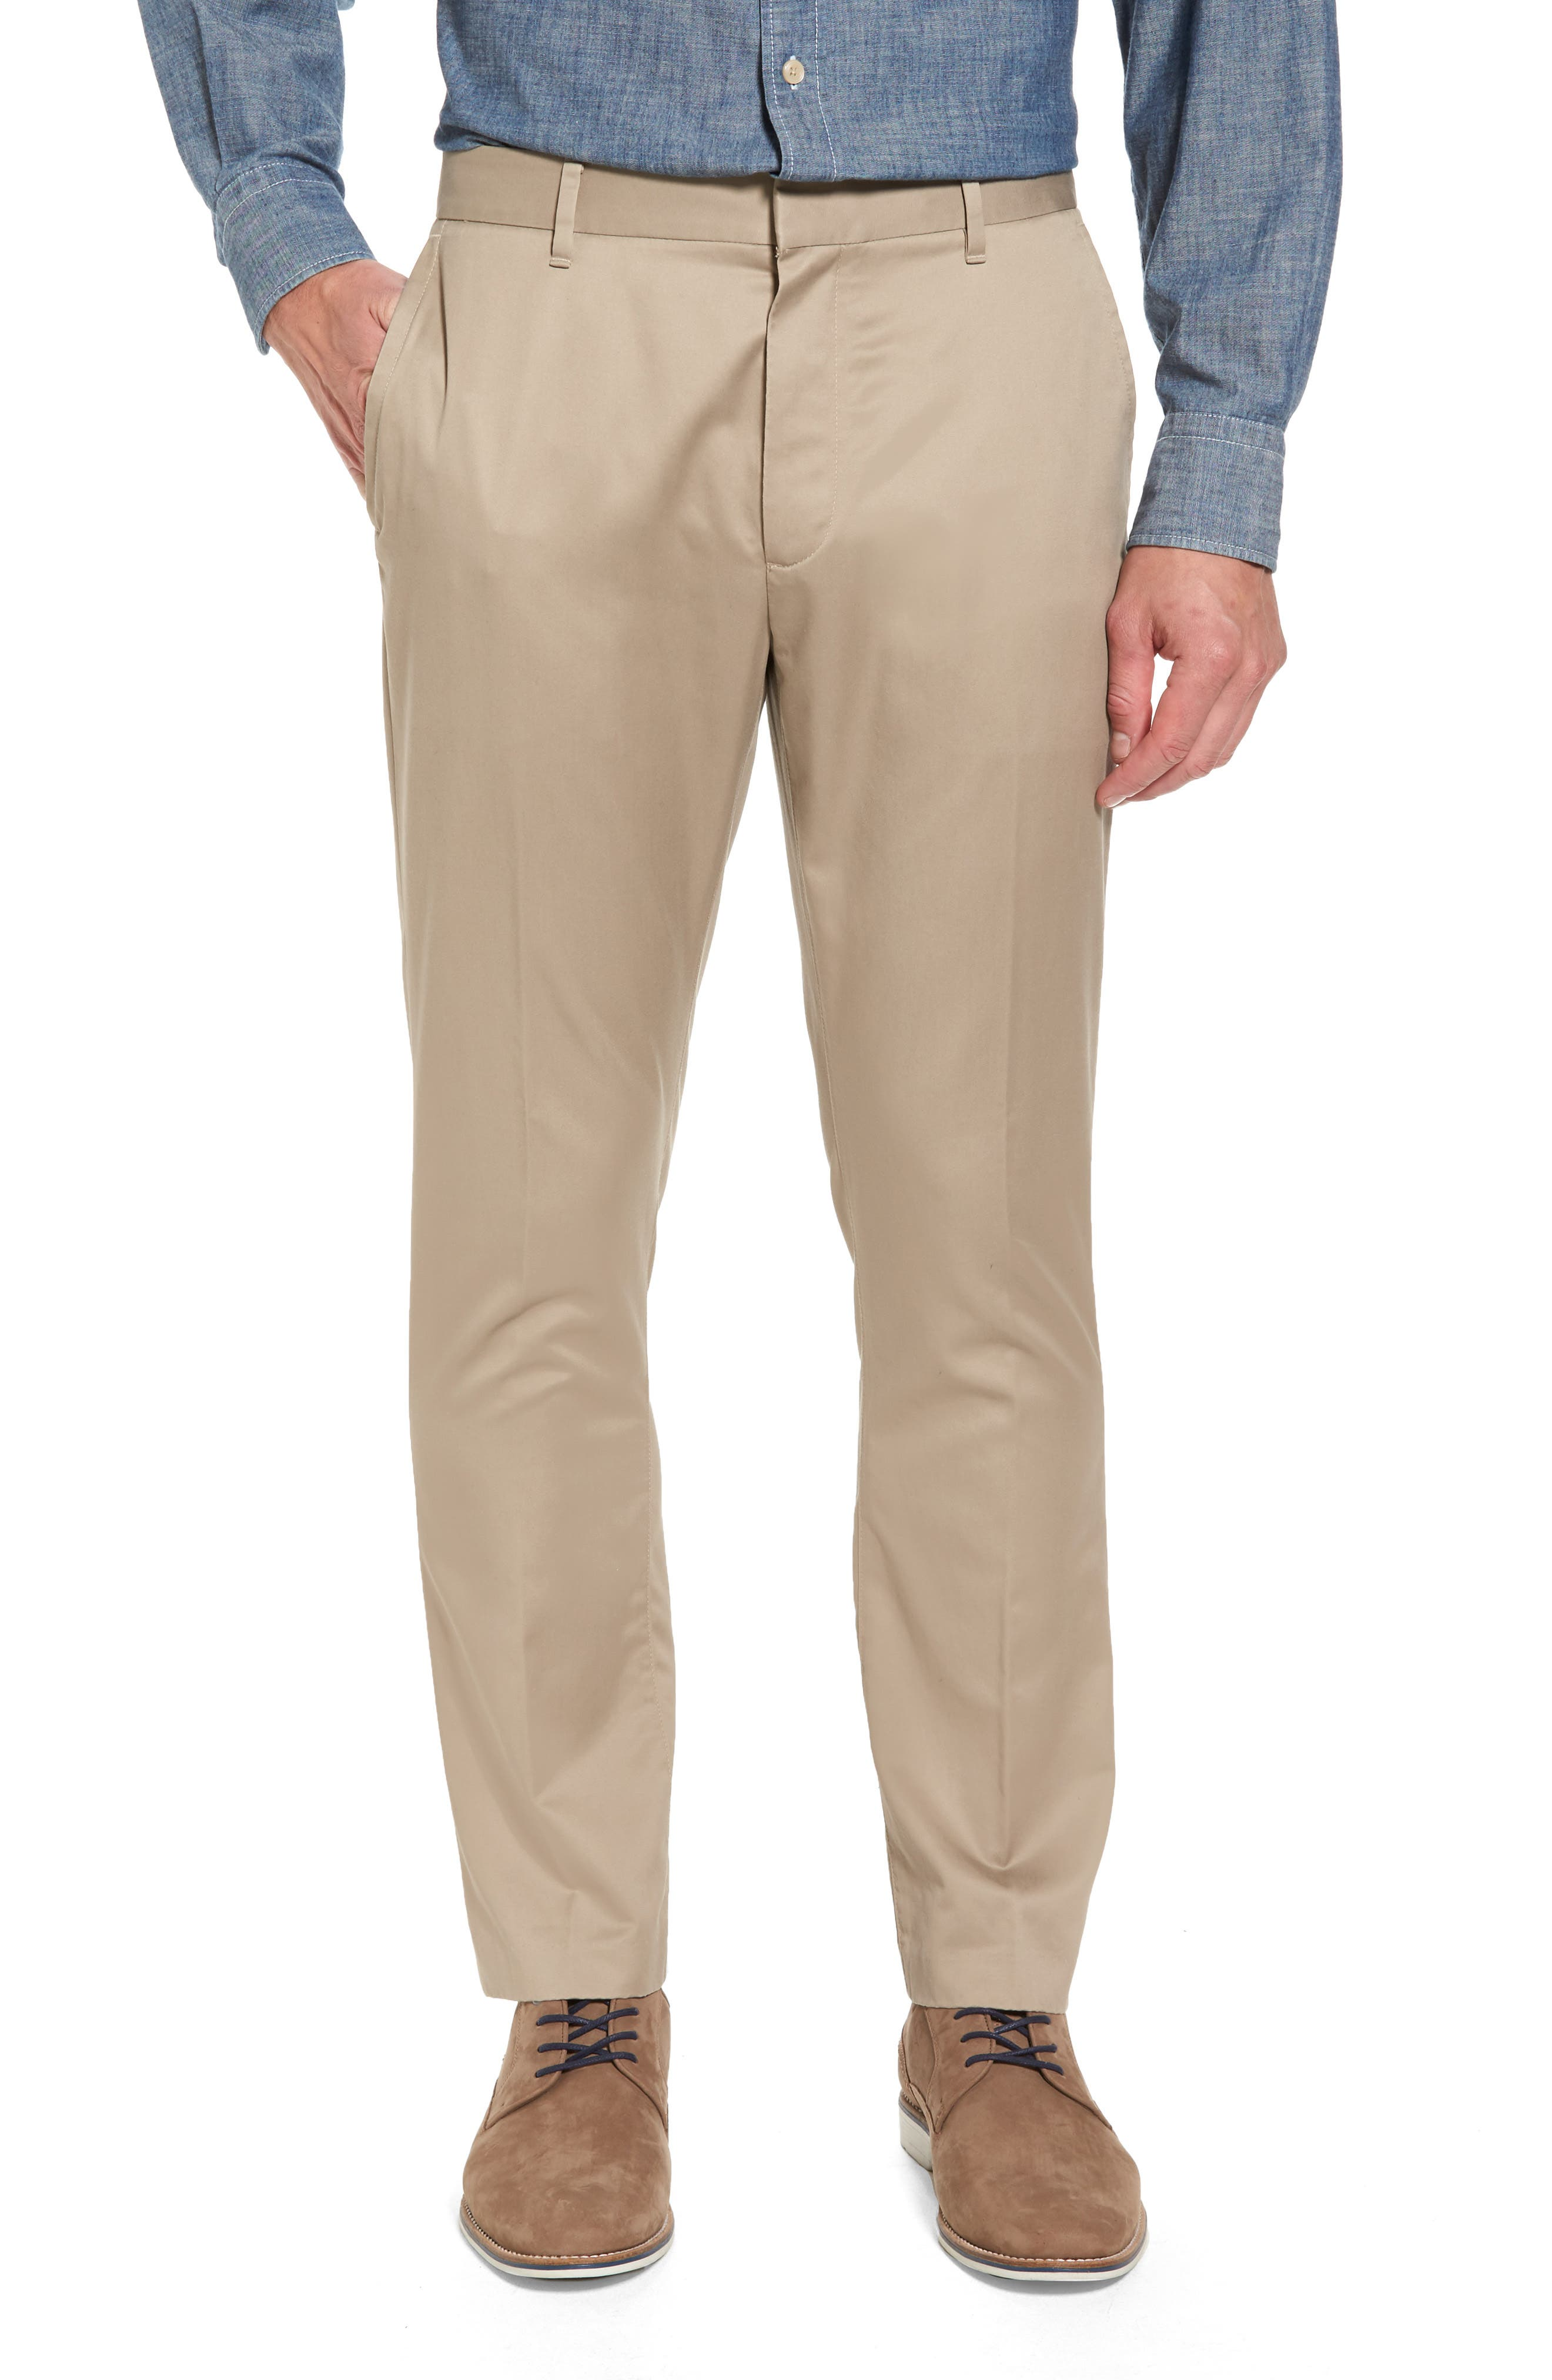 'Weekday Warriors' Non-Iron Tailored Cotton Chinos,                         Main,                         color, Wednesday Tans